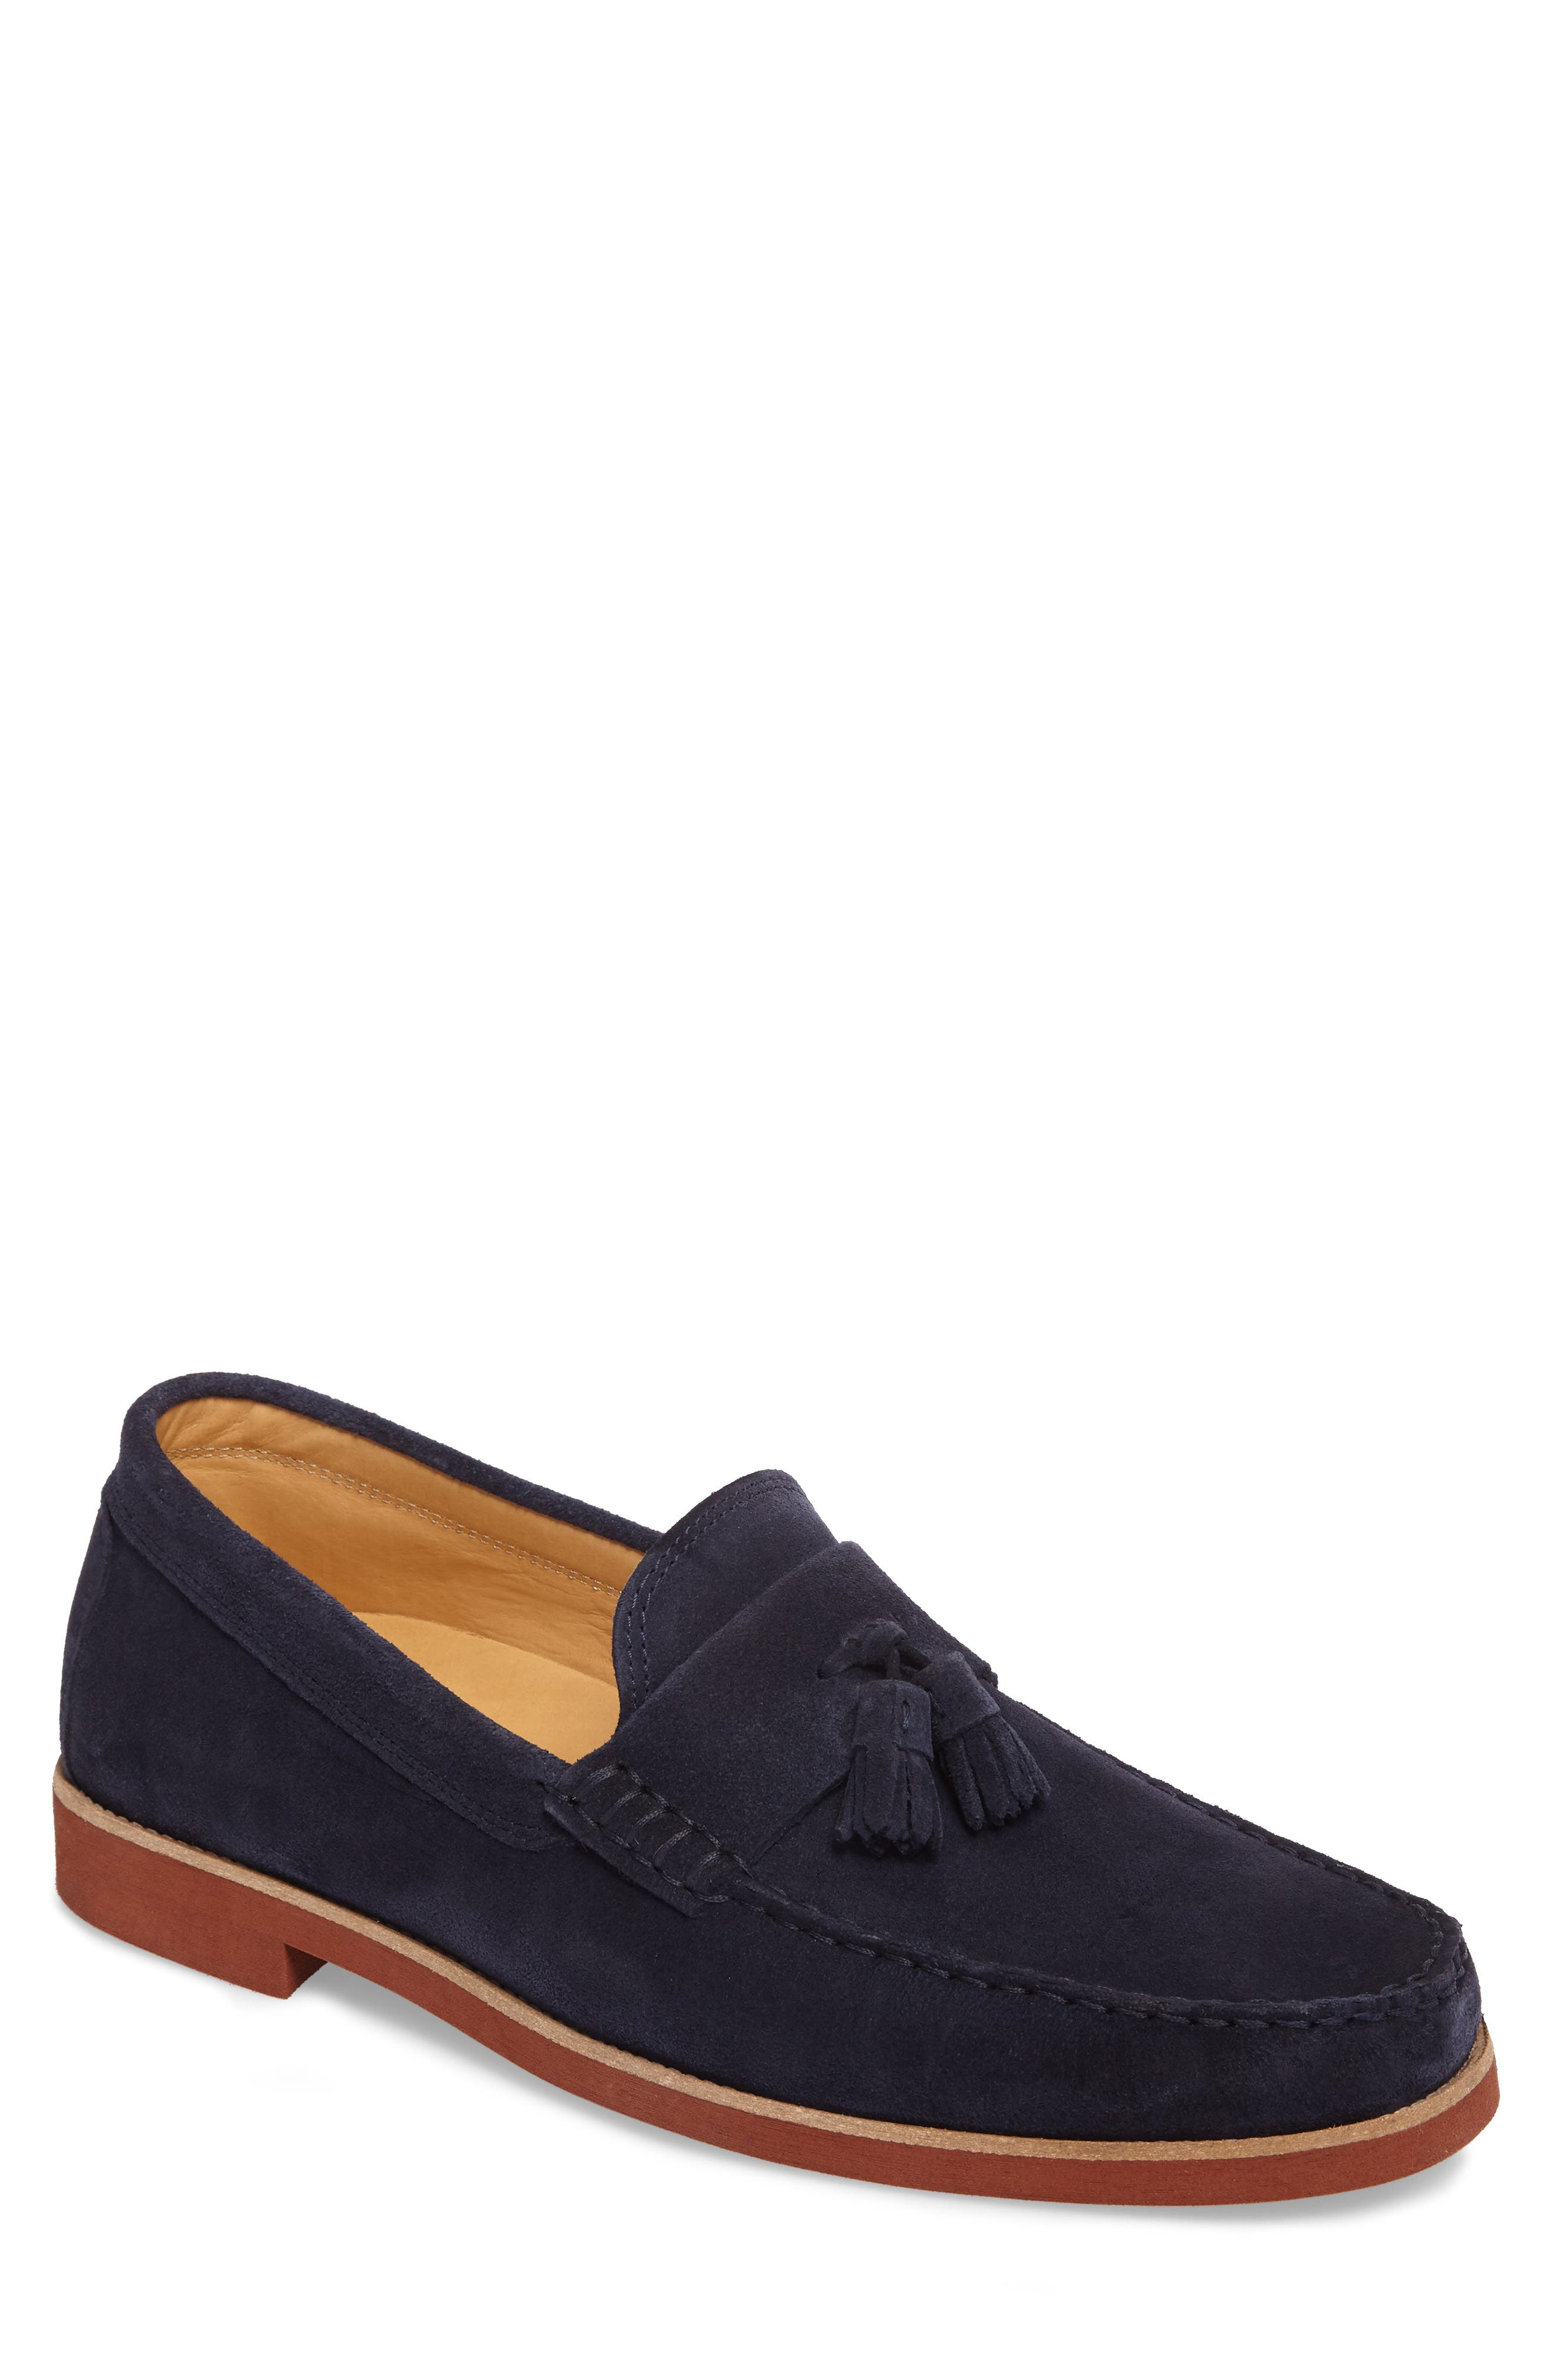 Stowes Tassel Loafer,                             Main thumbnail 1, color,                             410